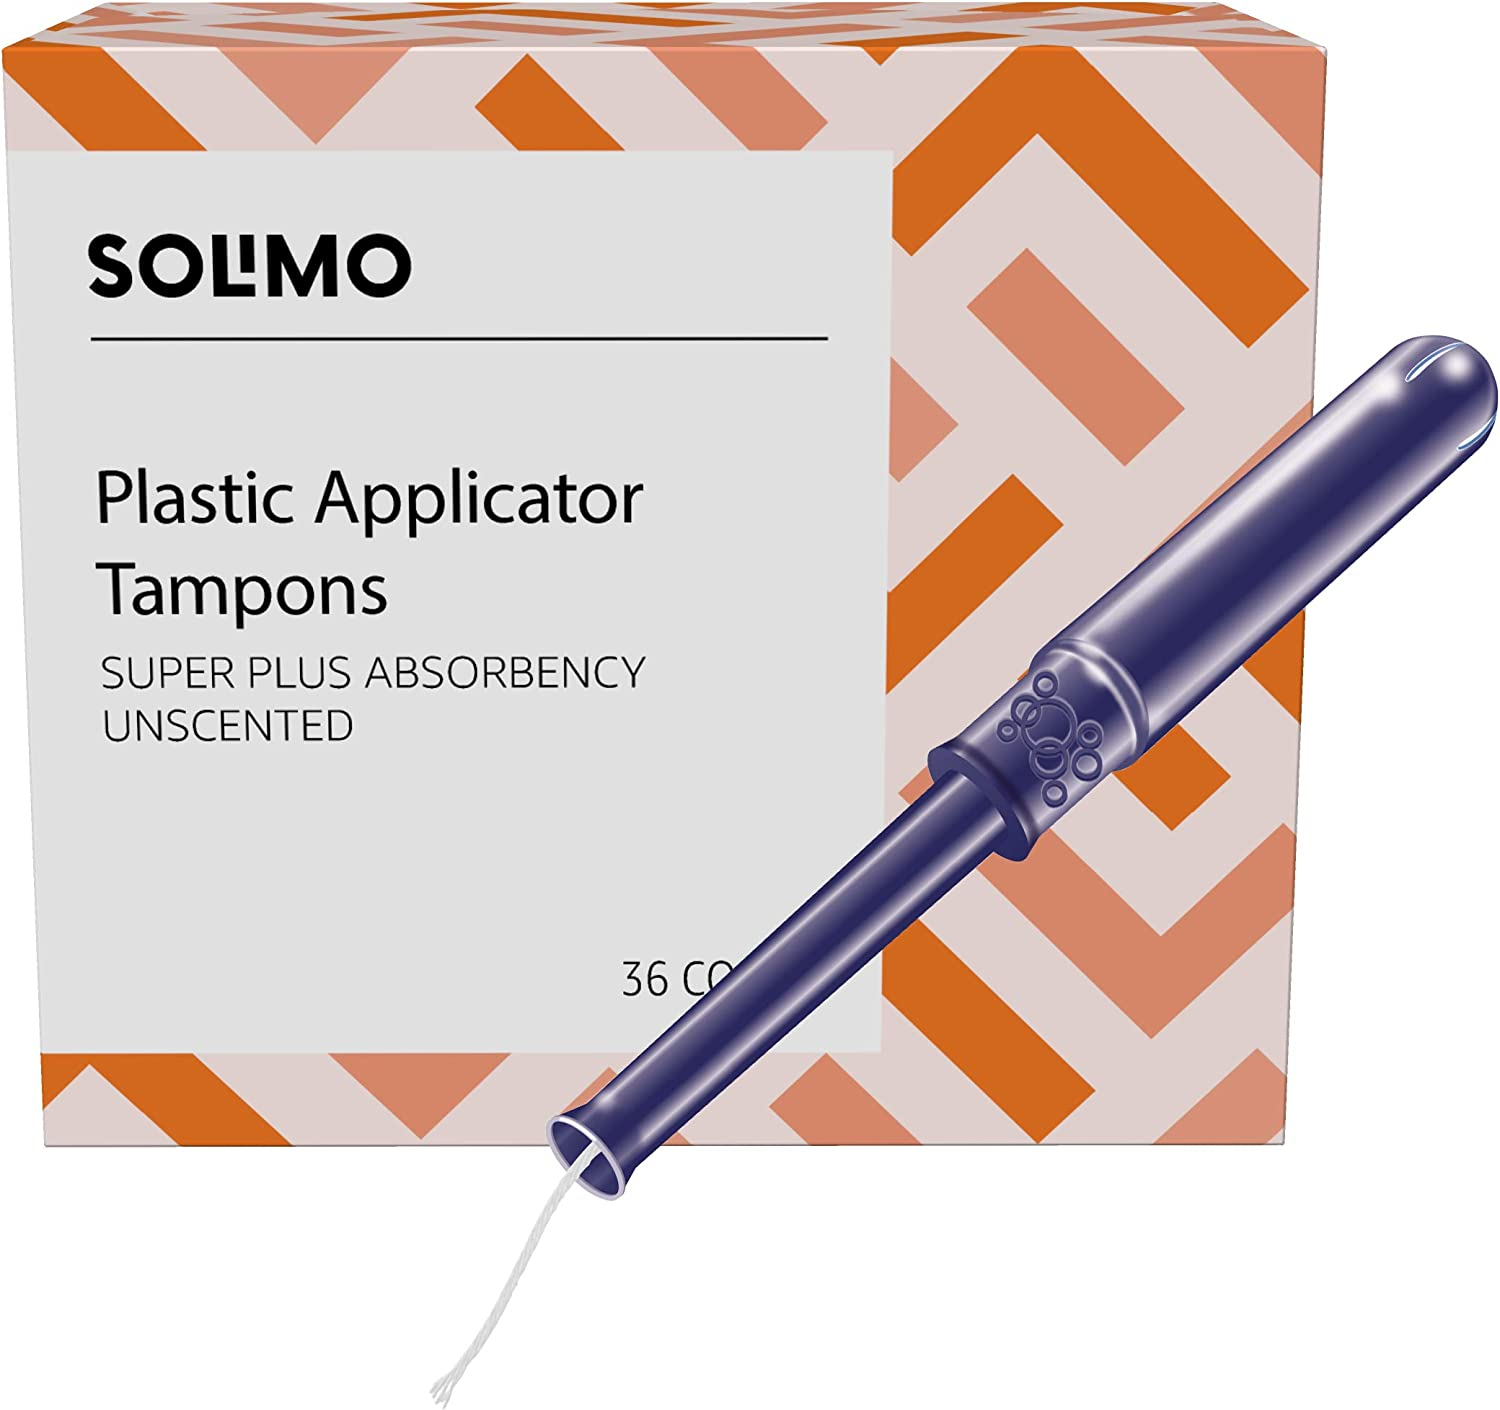 Columbus Mall Amazon Brand gift - Solimo Plastic Super Applicator Plus Abs Tampons